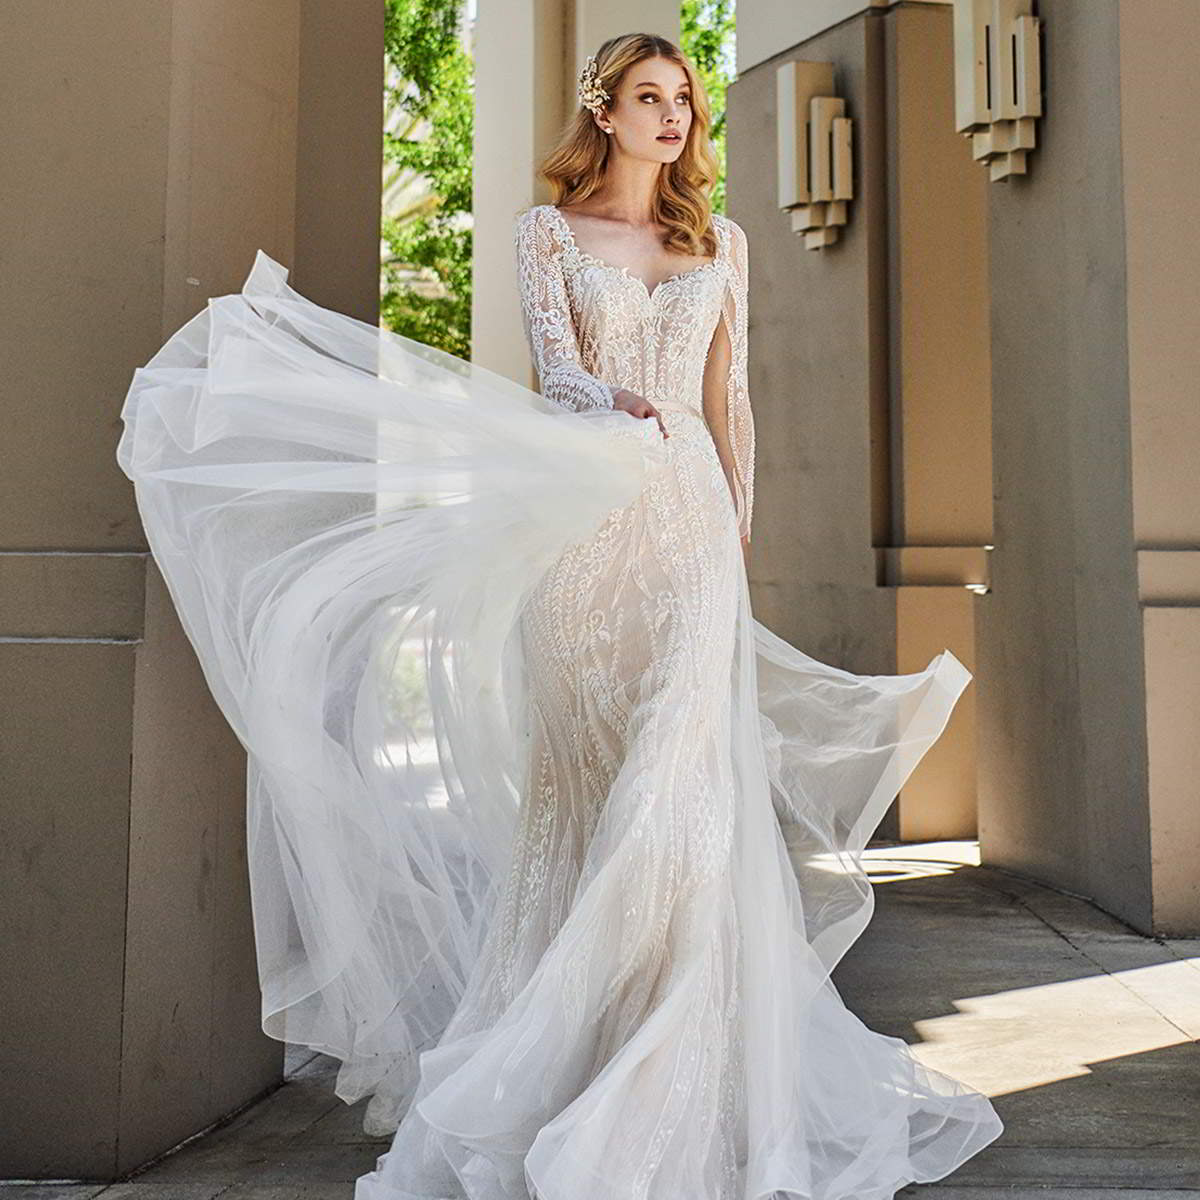 val stefani spring 2020 bridal collection featured on wedding inspirasi thumbnail